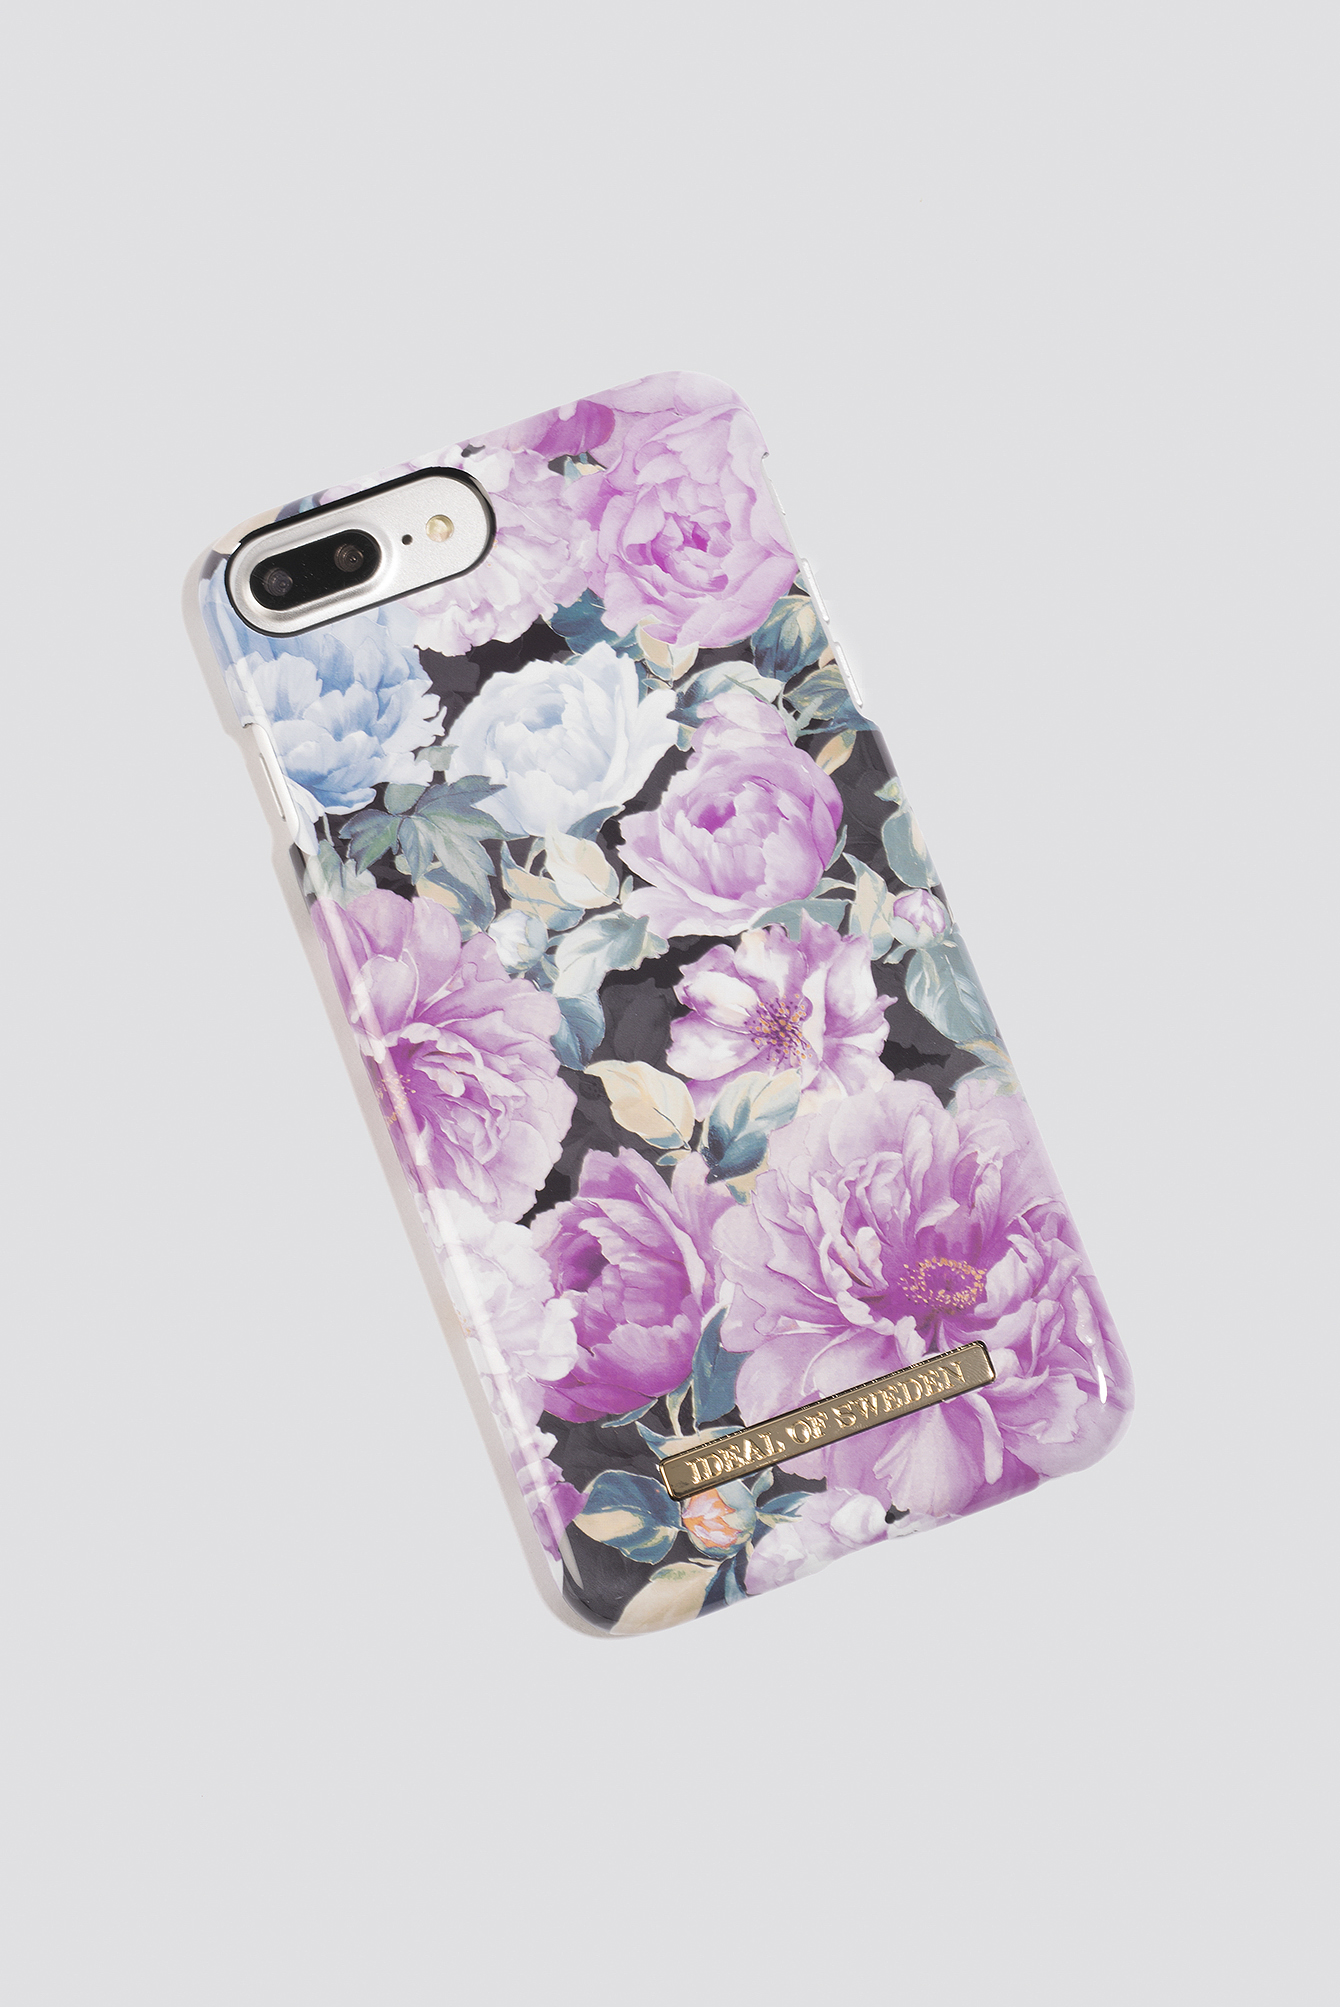 IDEAL OF SWEDEN Peony Garden Iphone 6/7/8 Plus Case - Pink, Multicolor in Pink,Multicolor